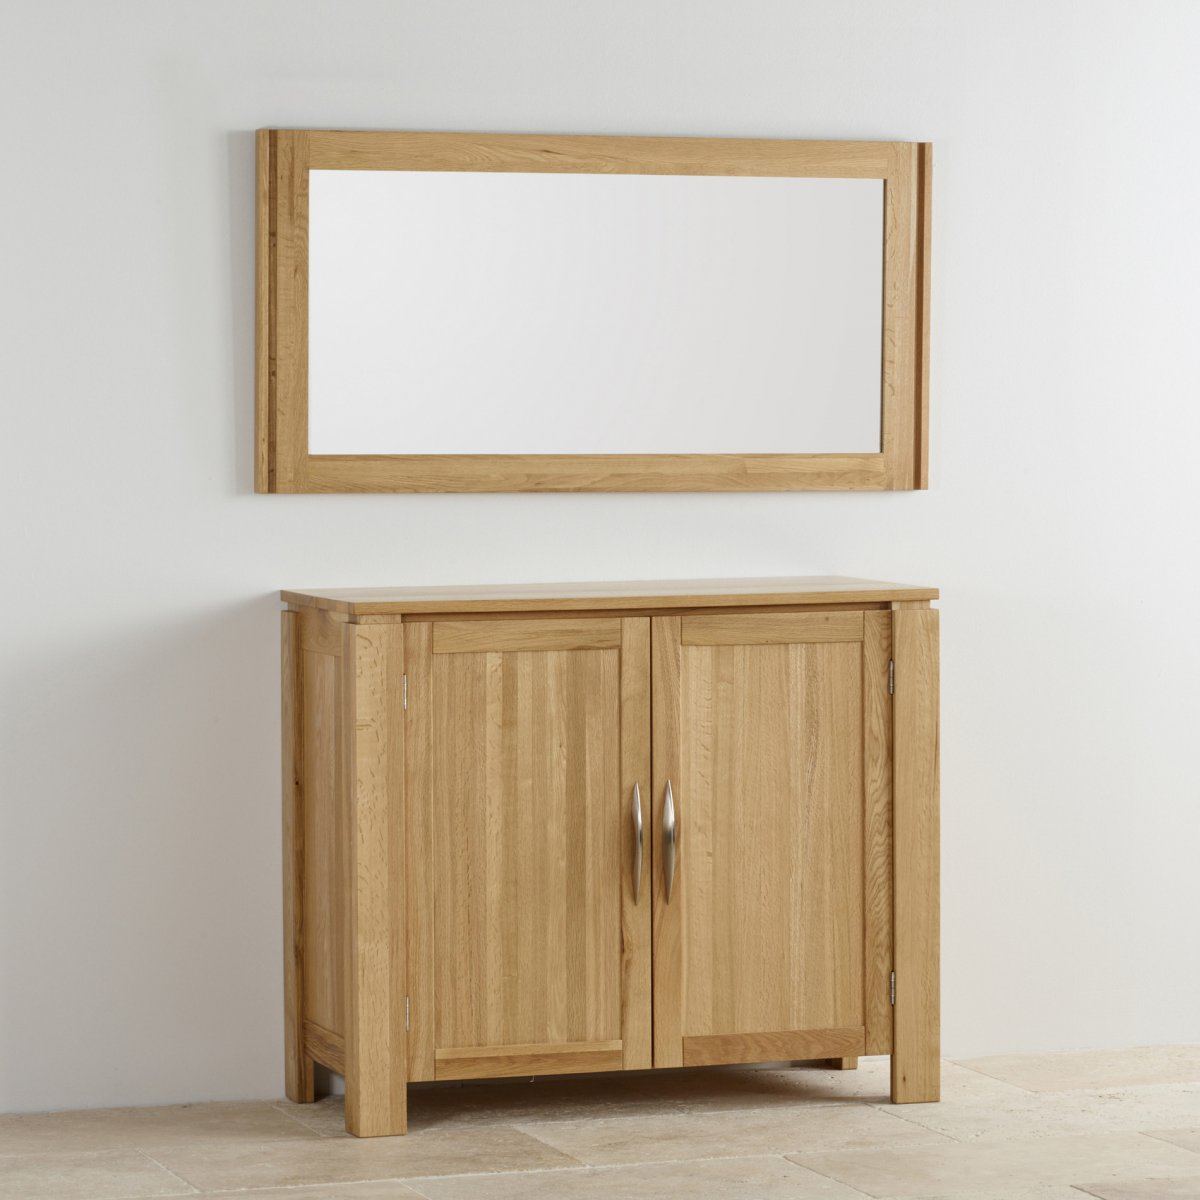 16 Sophisticated Rustic Living Room Designs You Won T Turn: Galway Natural Solid Oak Wall Mirror By Oak Furniture Land